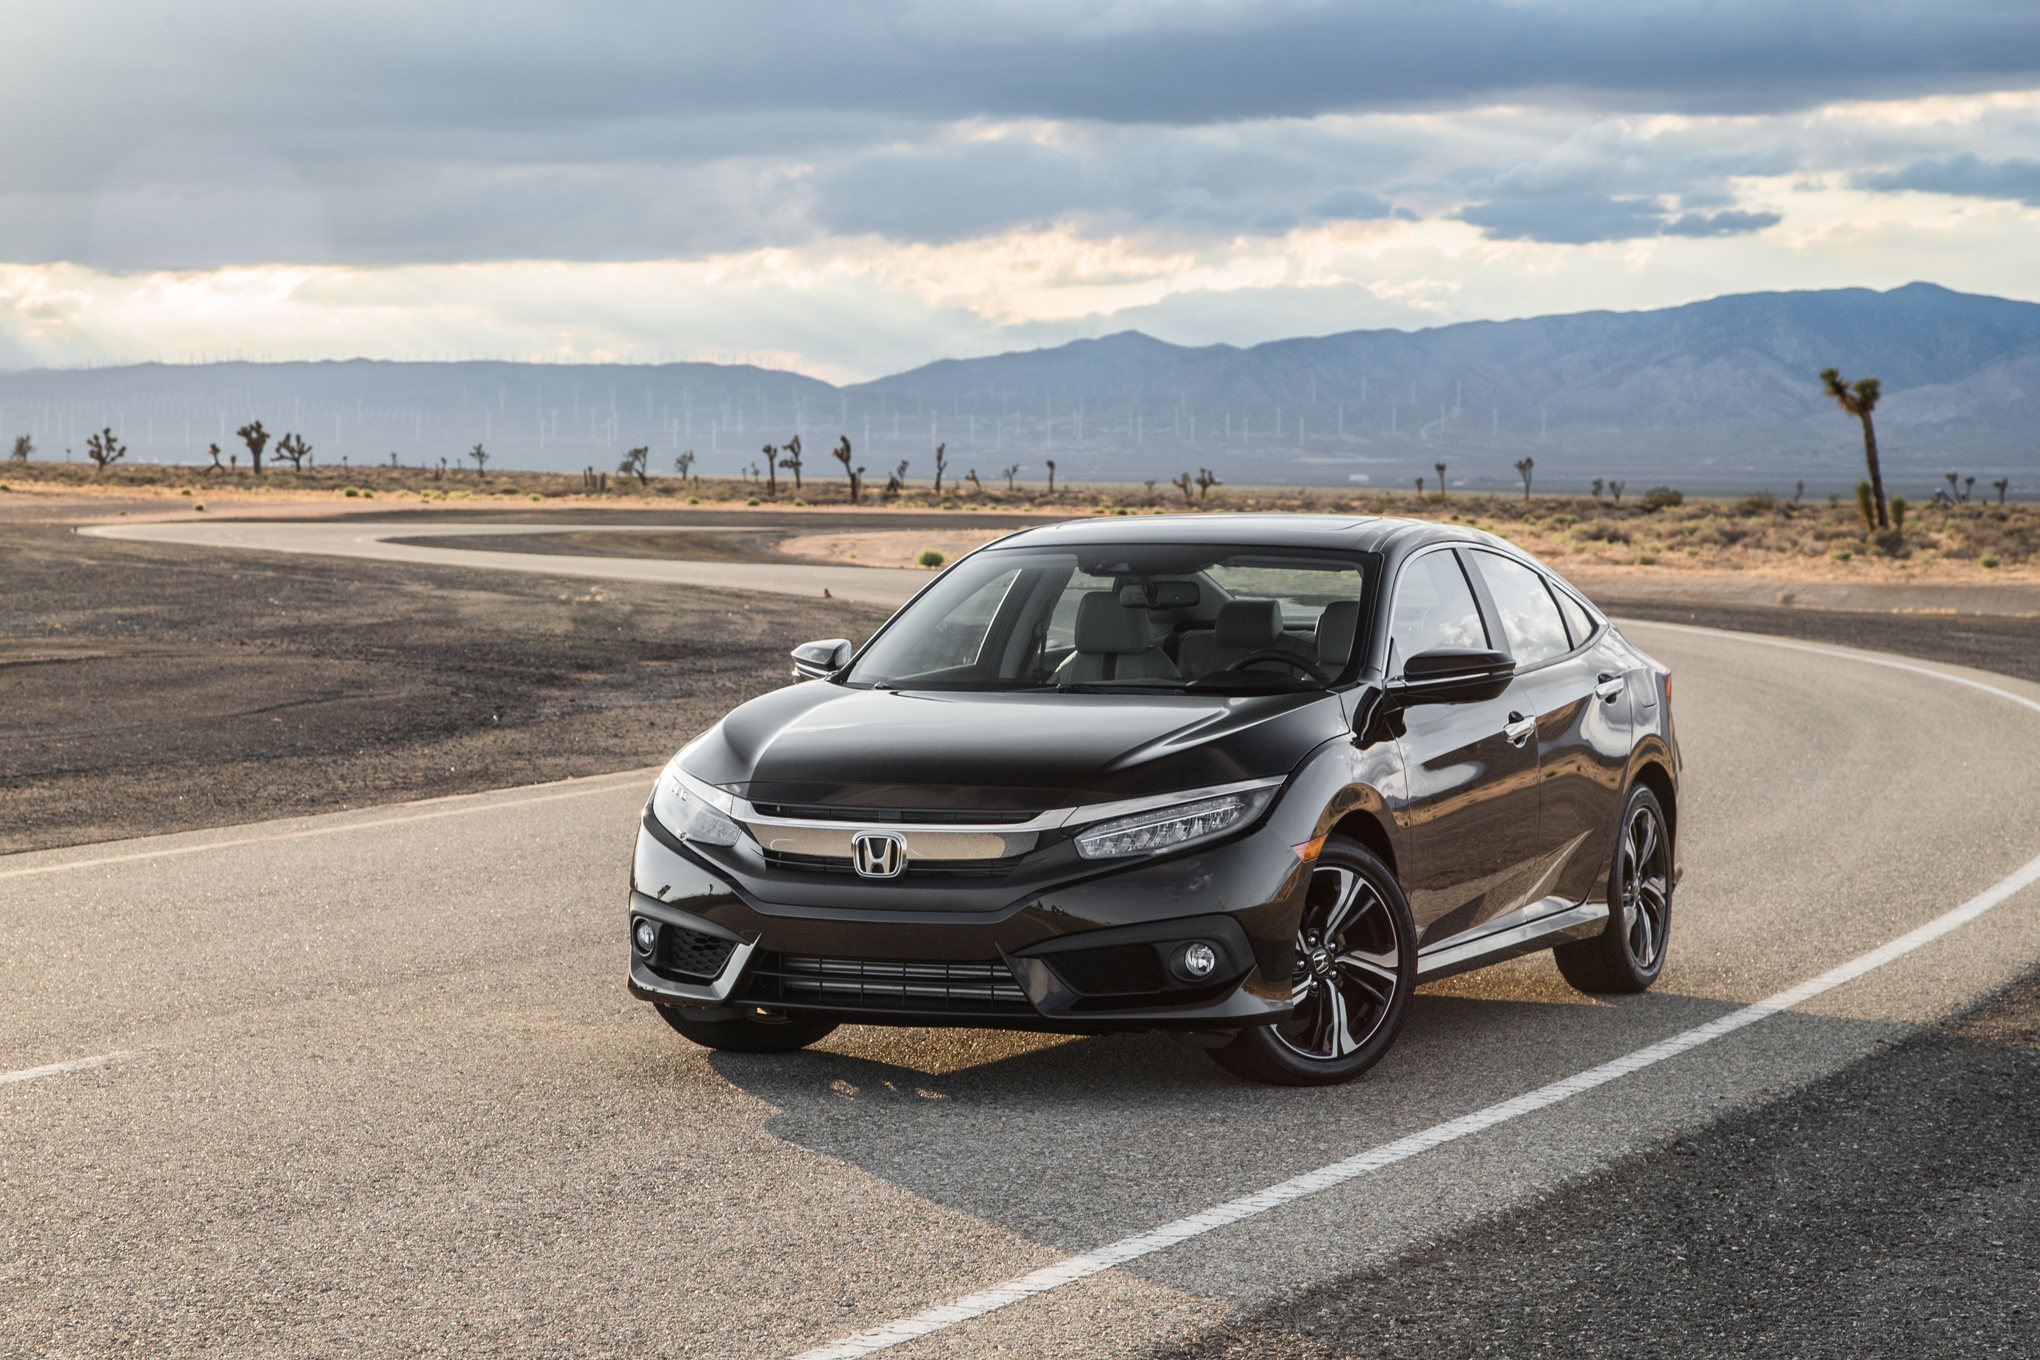 2016 Honda Civic Touring Black (View 16 of 36)